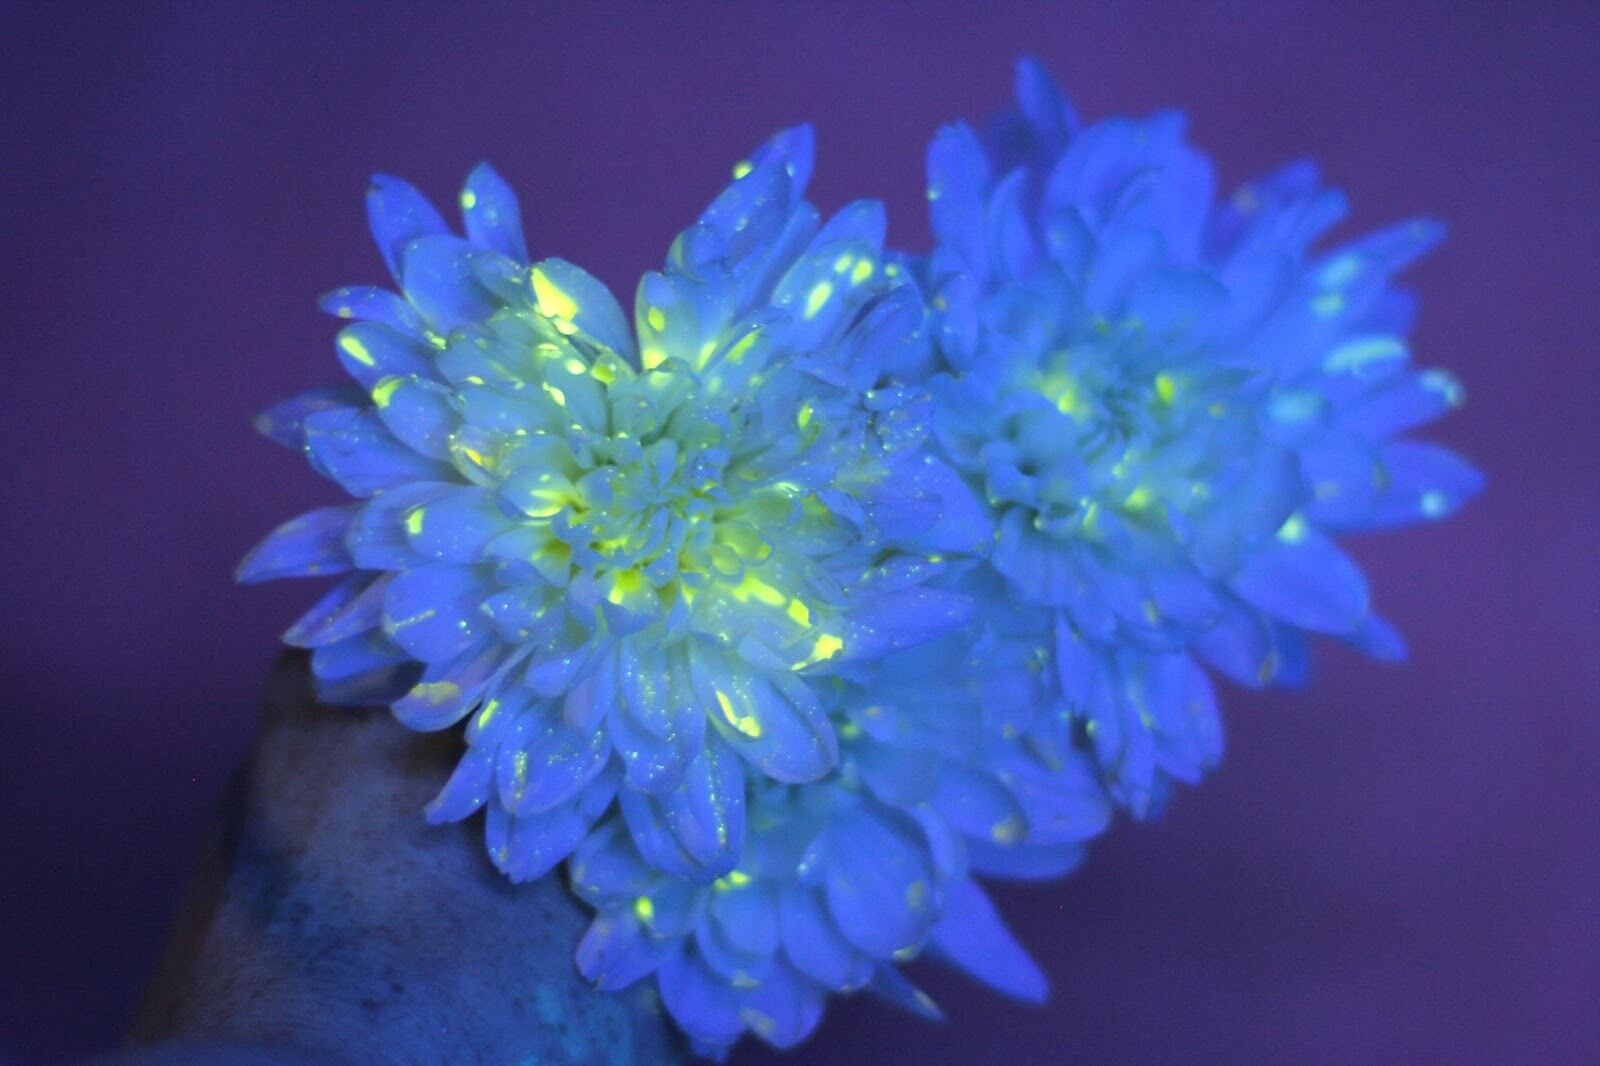 Glow in the Dark Mums and Daisies at SLO Childrens Museum